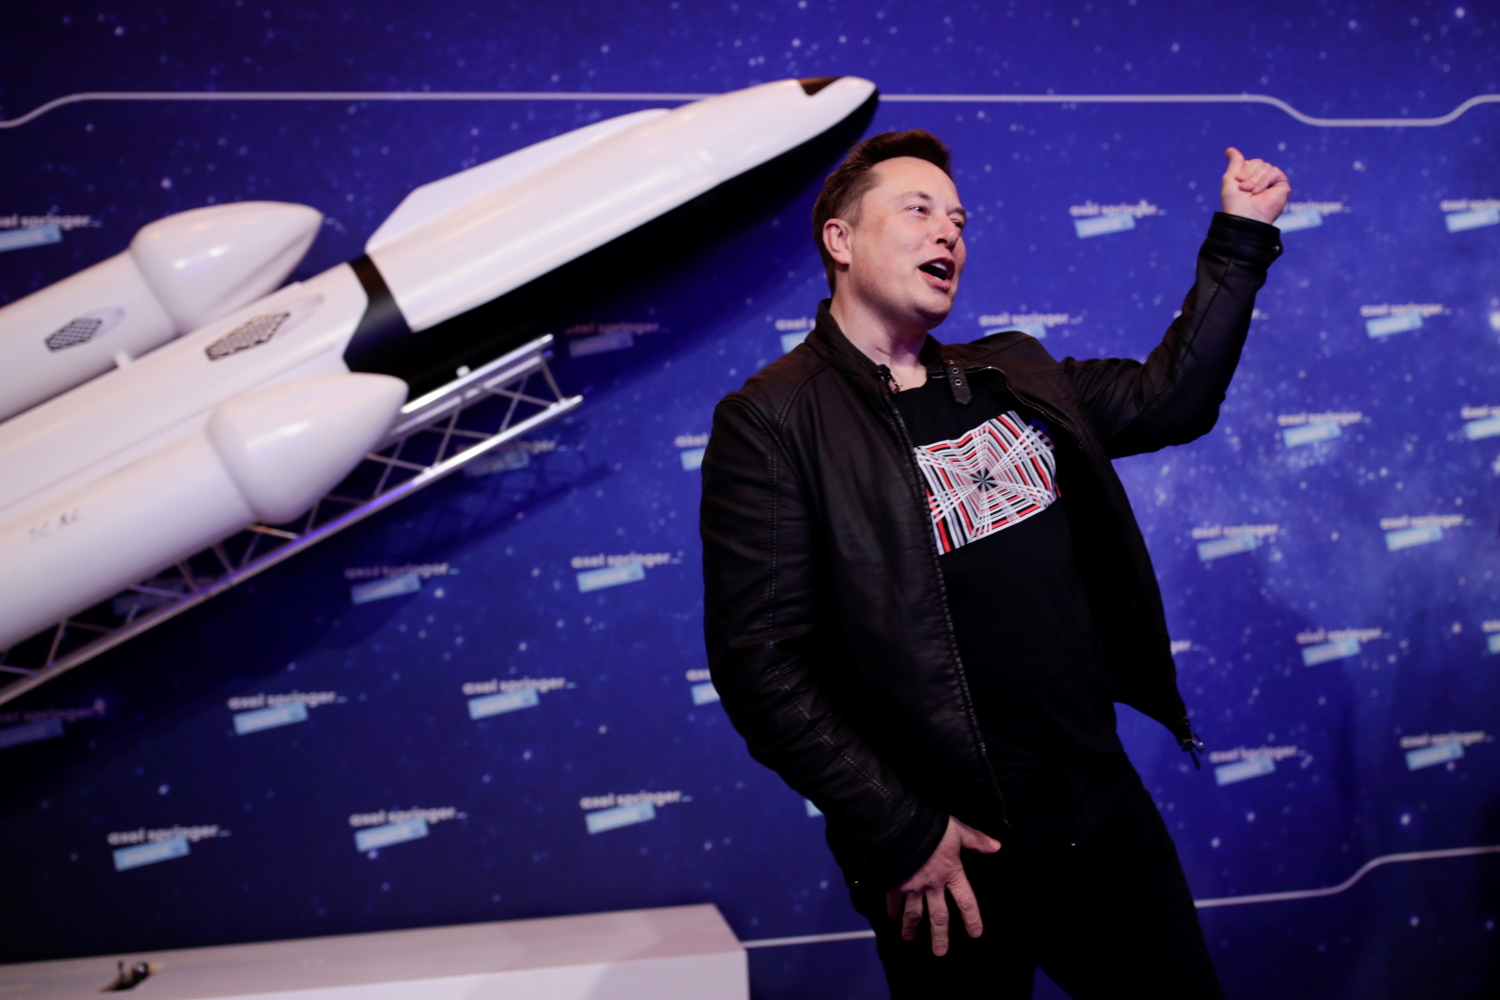 Elon Musk Says SpaceX Holds Bitcoin at 'B Word' Conference